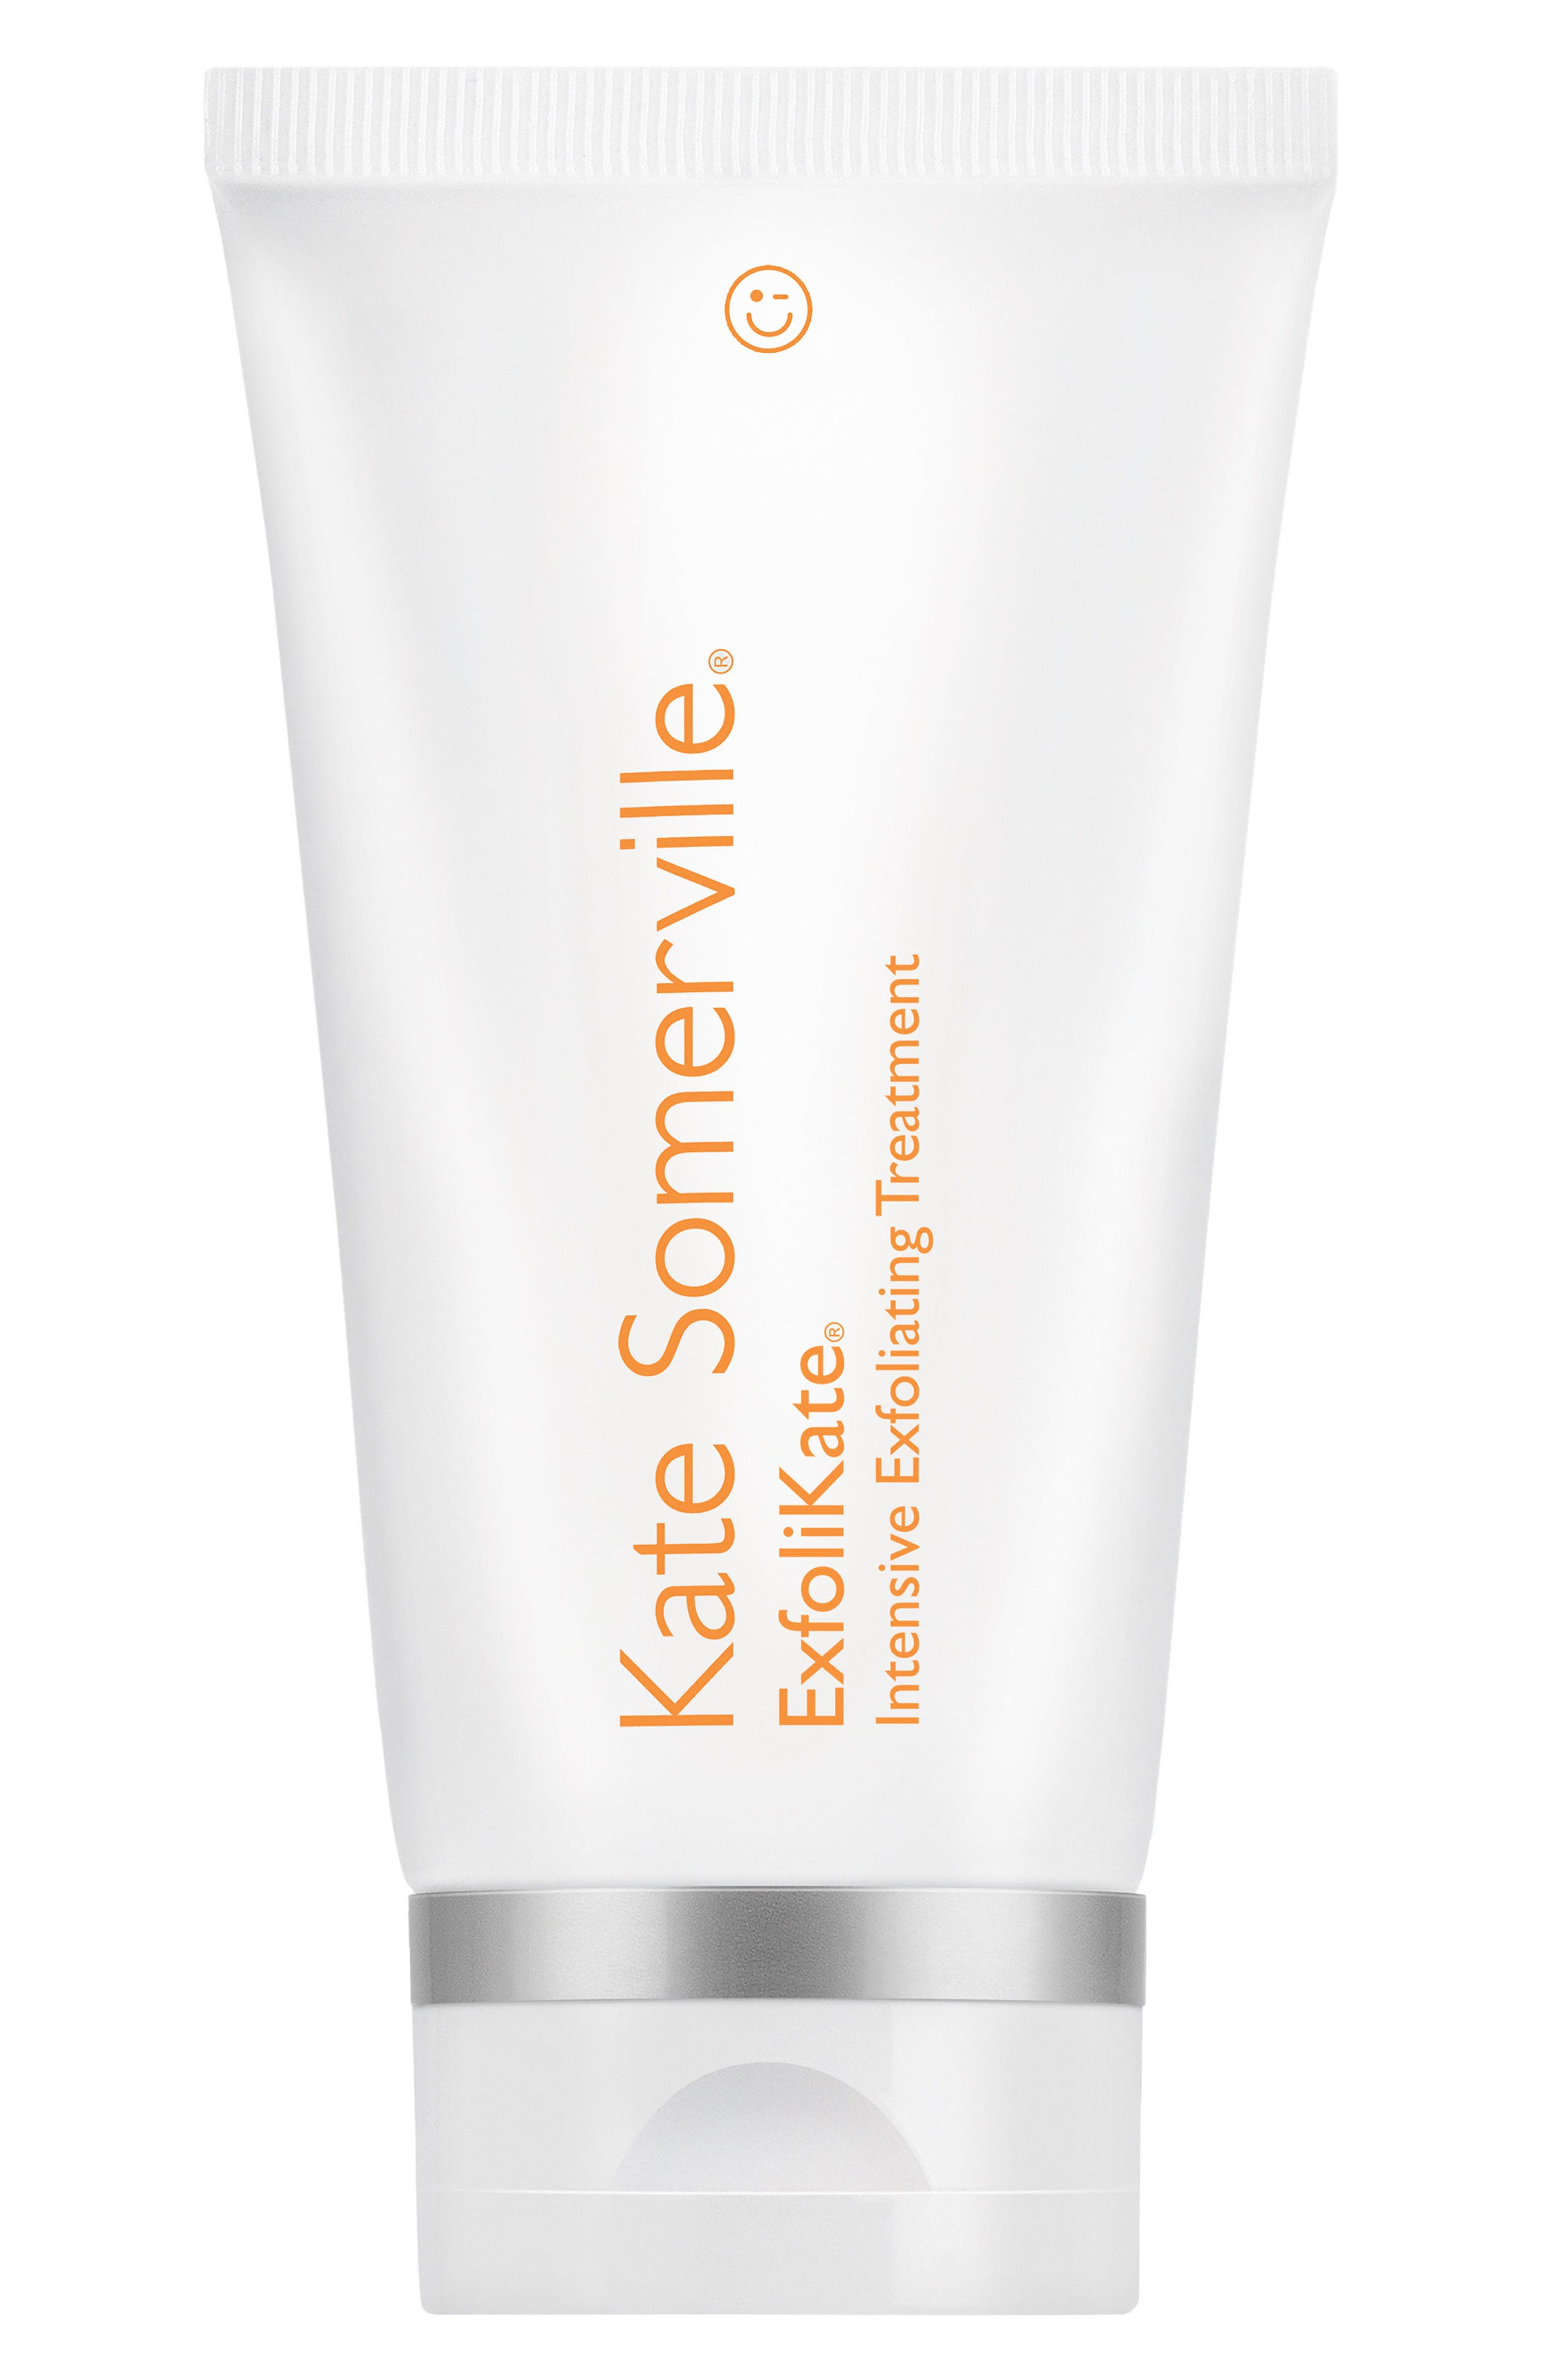 KATE SOMERVILLE® ExfoliKate® Intensive Exfoliating Treatment